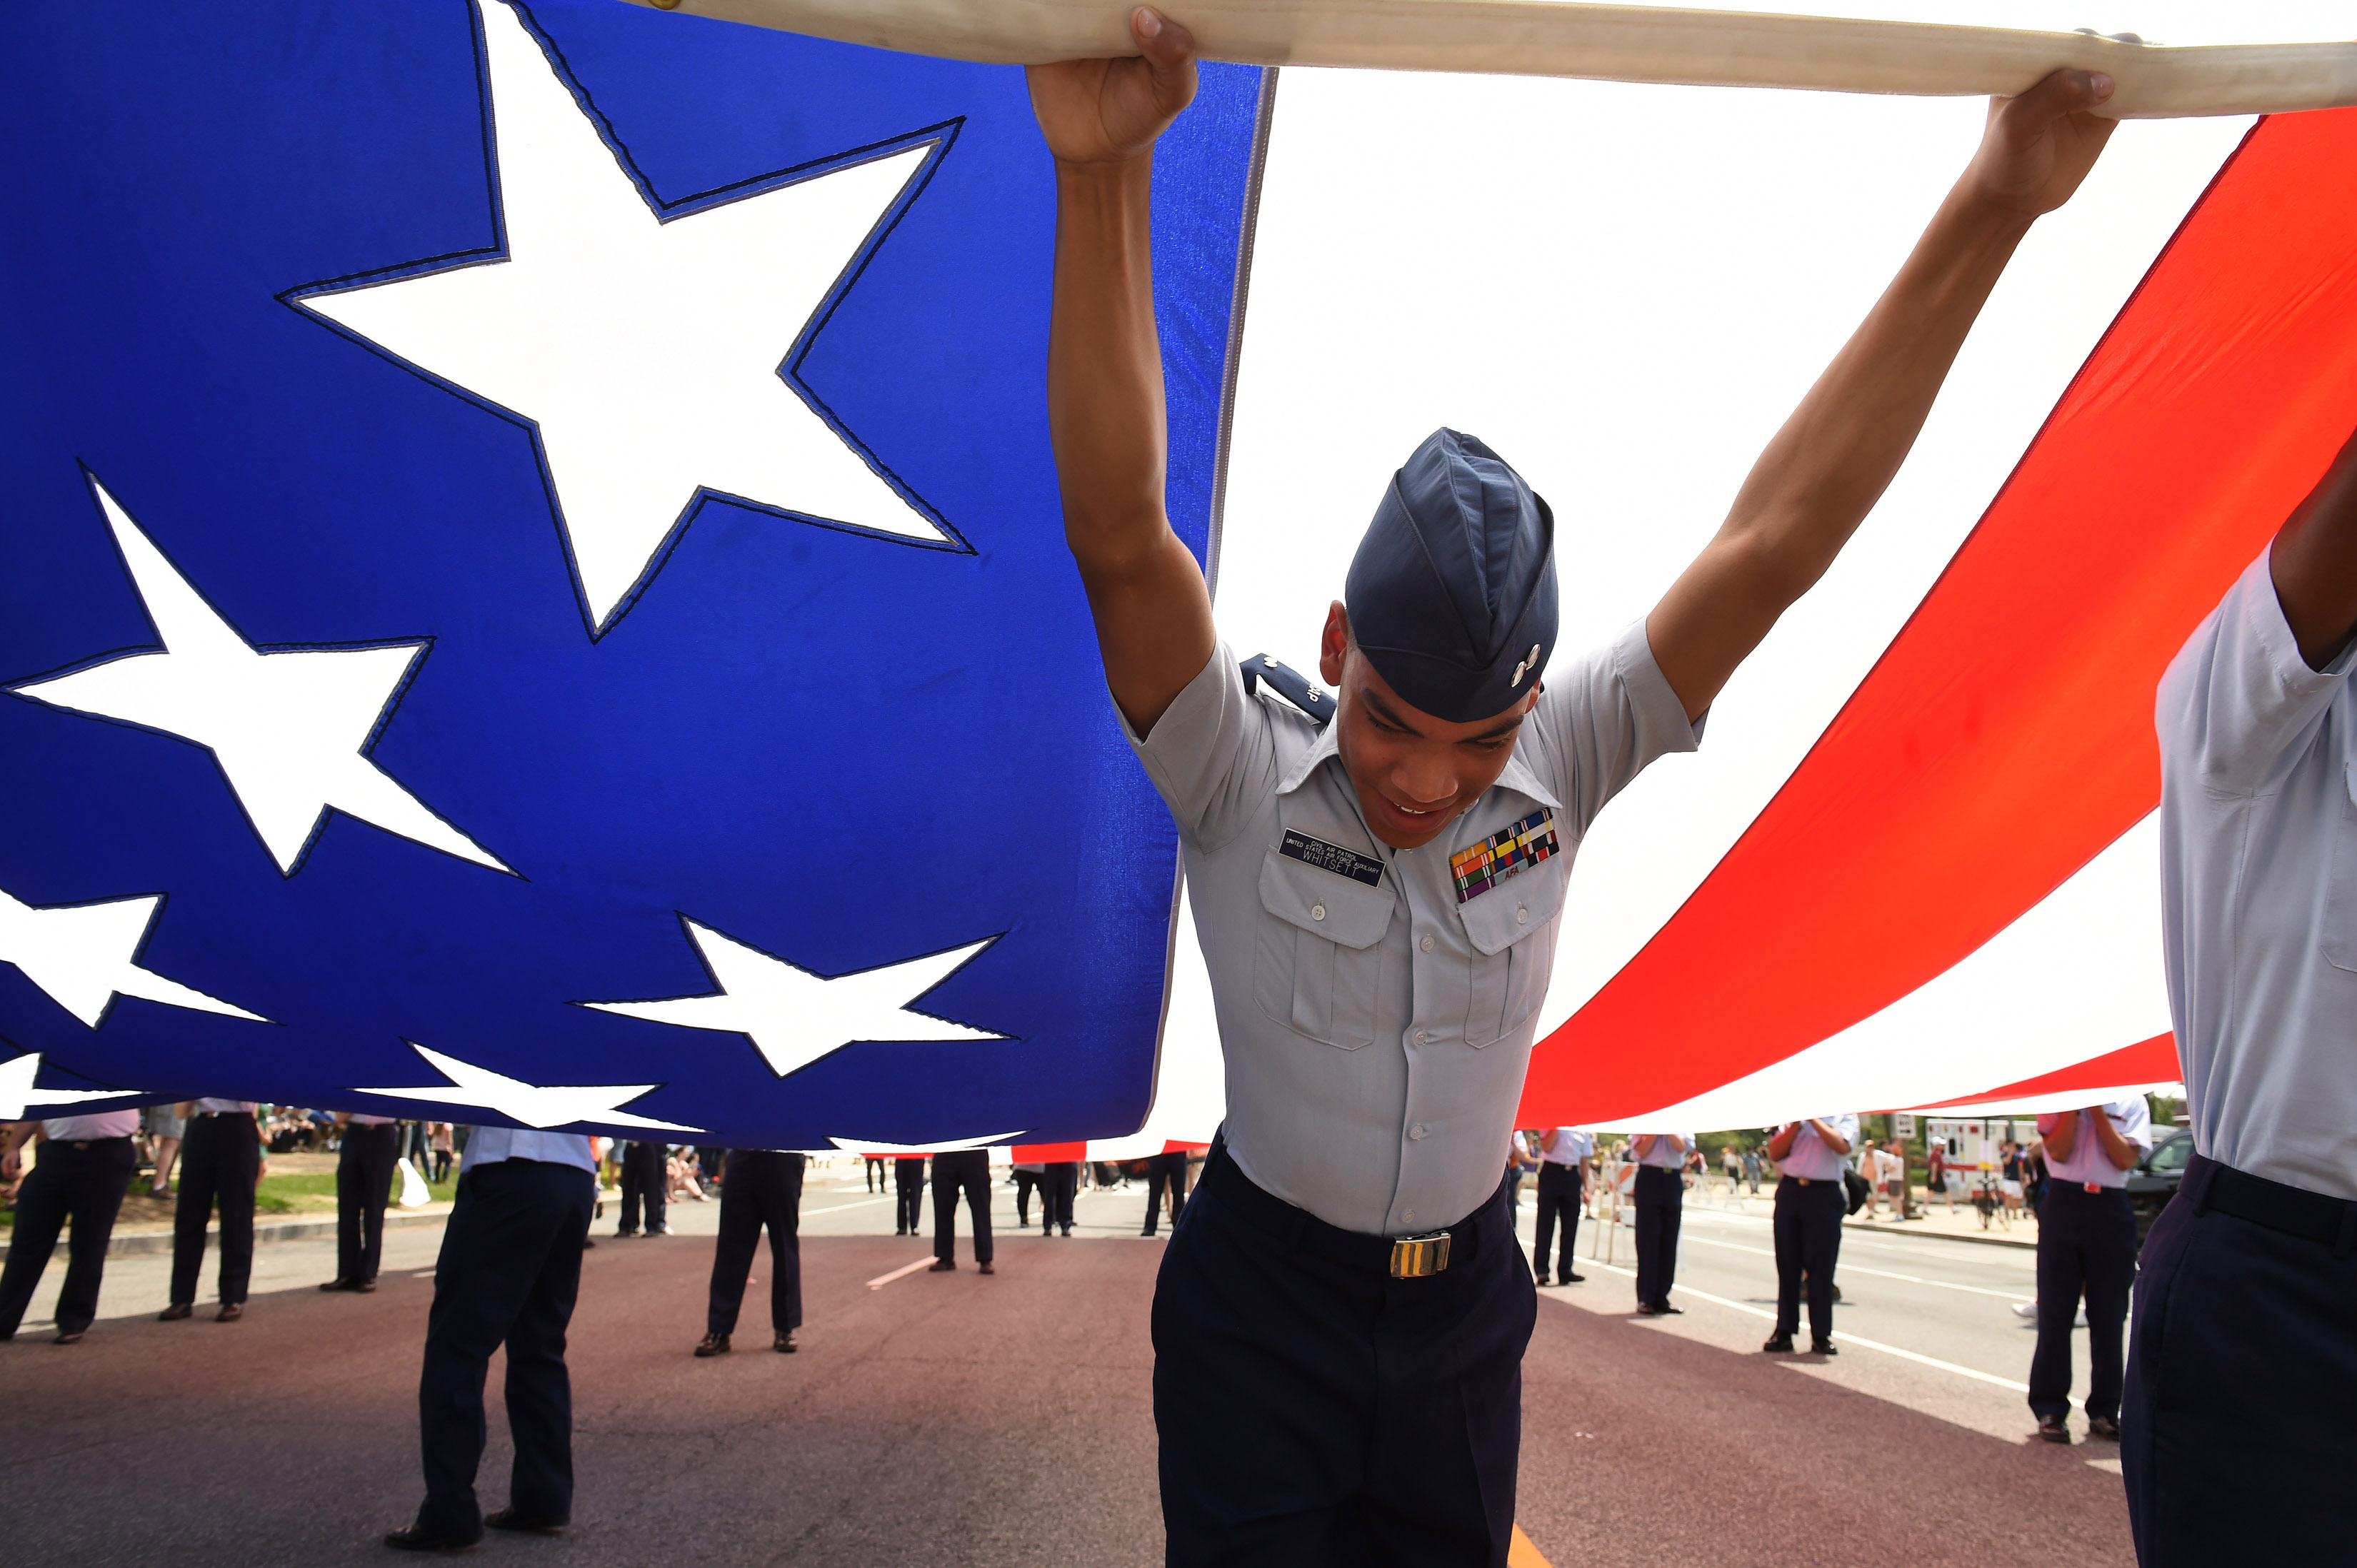 Tyler Whitsett, a First Lieutenant cadet with the Civil Air Patrol United States Air Force Auxiliary helps to hold up a large American flag prior to the start of the National Memorial Day Parade on May 25, 2015 in Washington, DC.